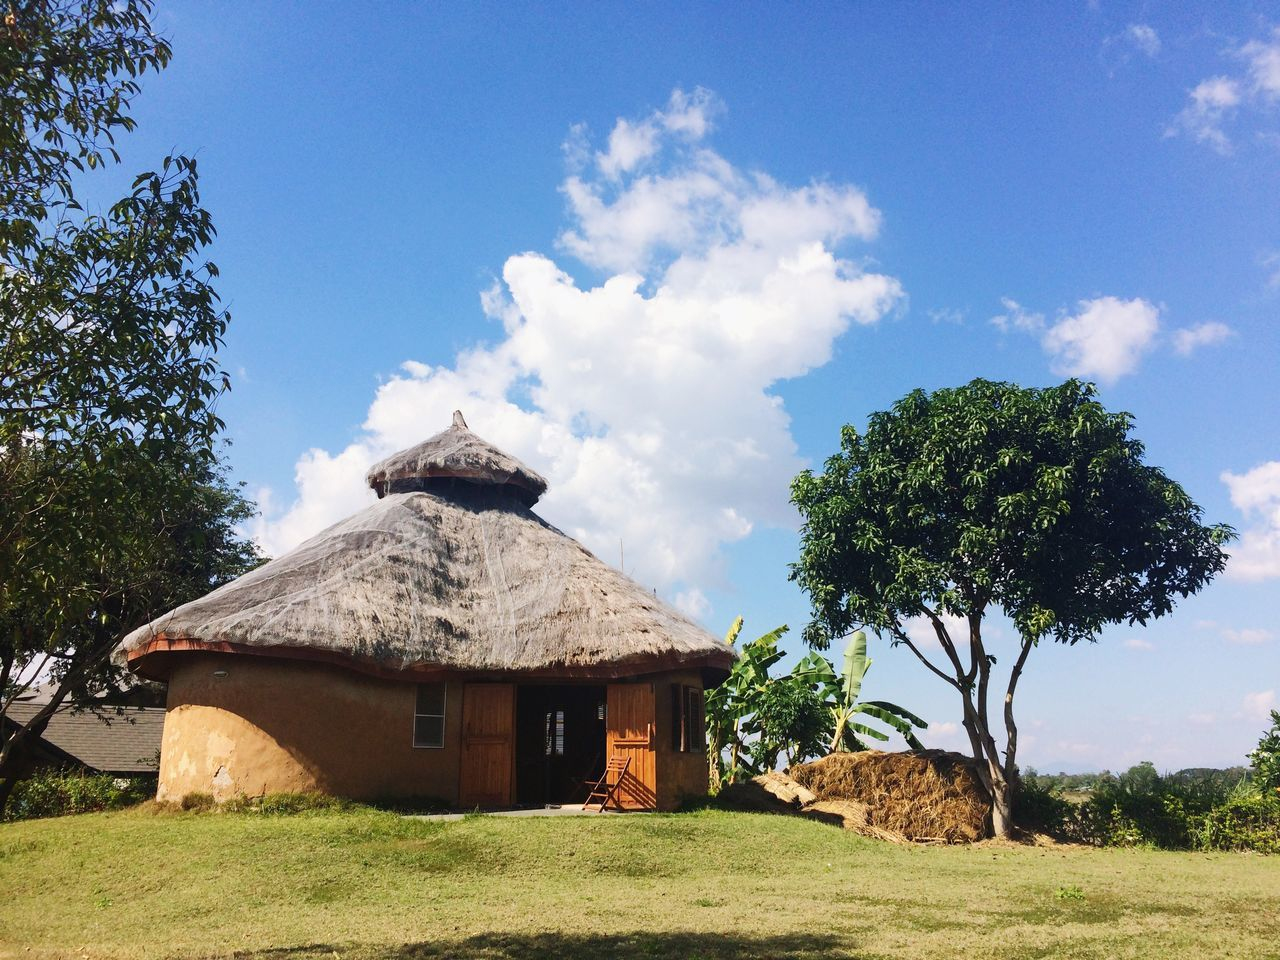 Home Tree Sky Nature Cloud - Sky Architecture Built Structure Earthen House Earth House Shelter House Green Landscape